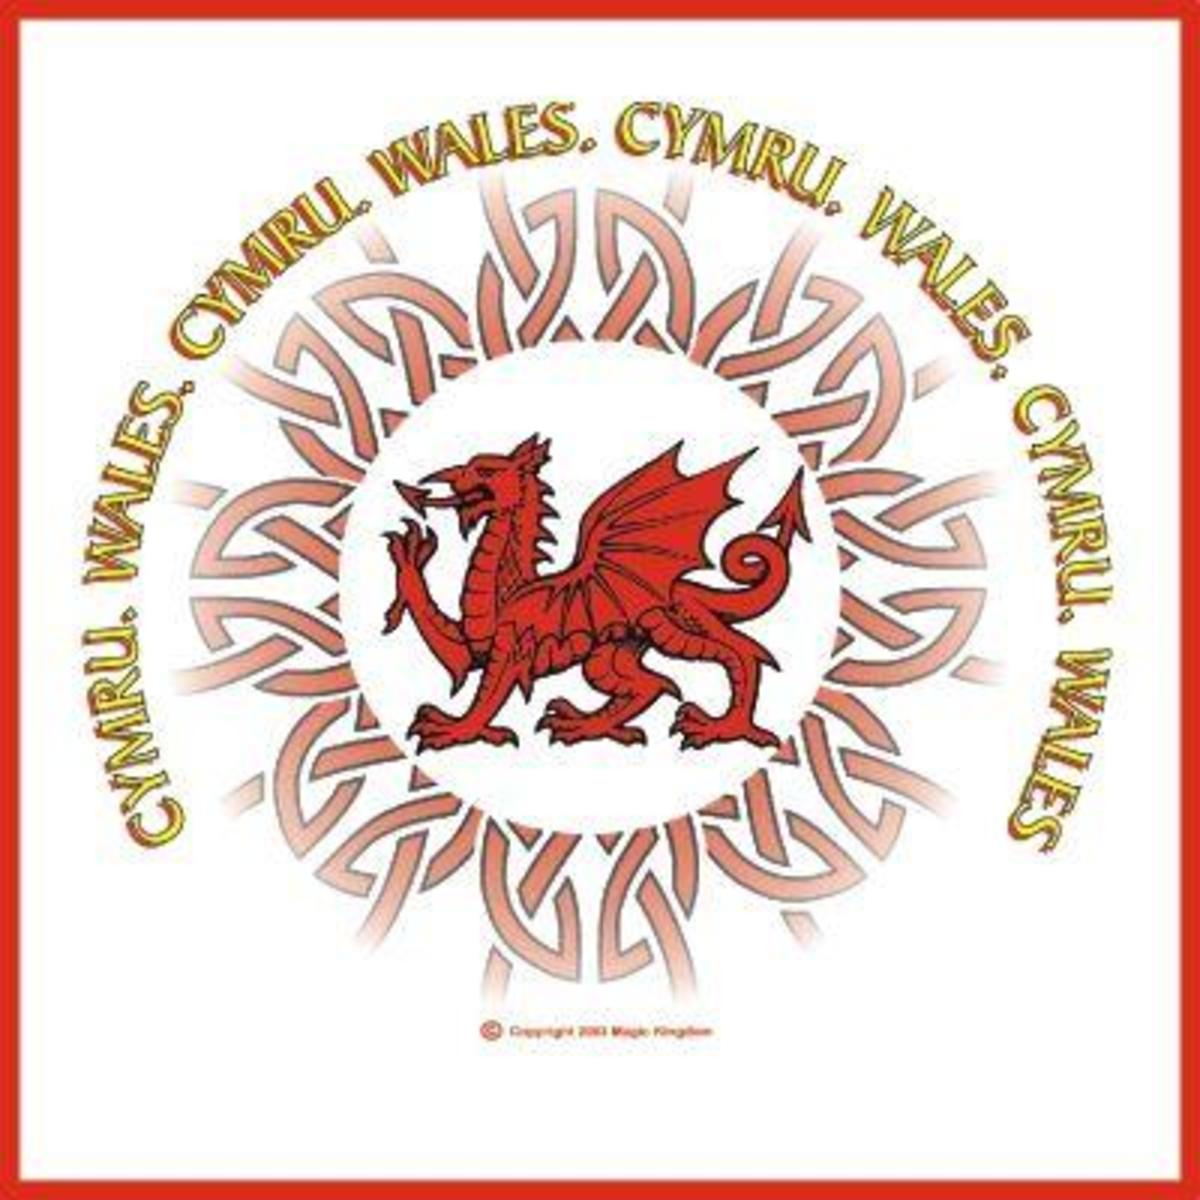 Cymru the original name for Wales in Celtic along with Celtic knot and dragon.